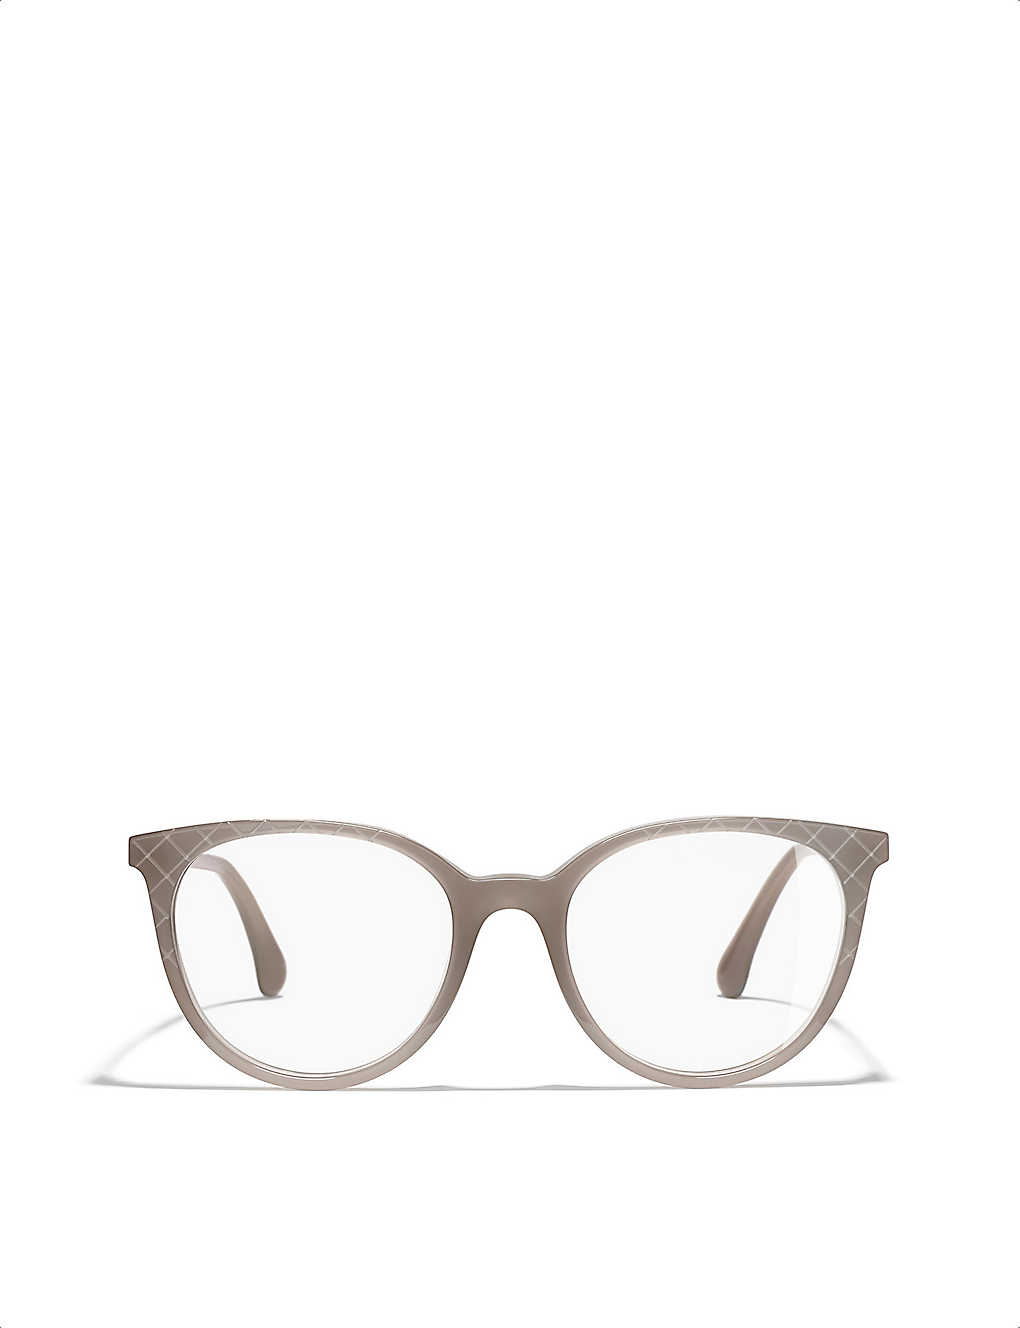 d154ddb4d71f7 CH3378 Pantos glasses - Taupe ...